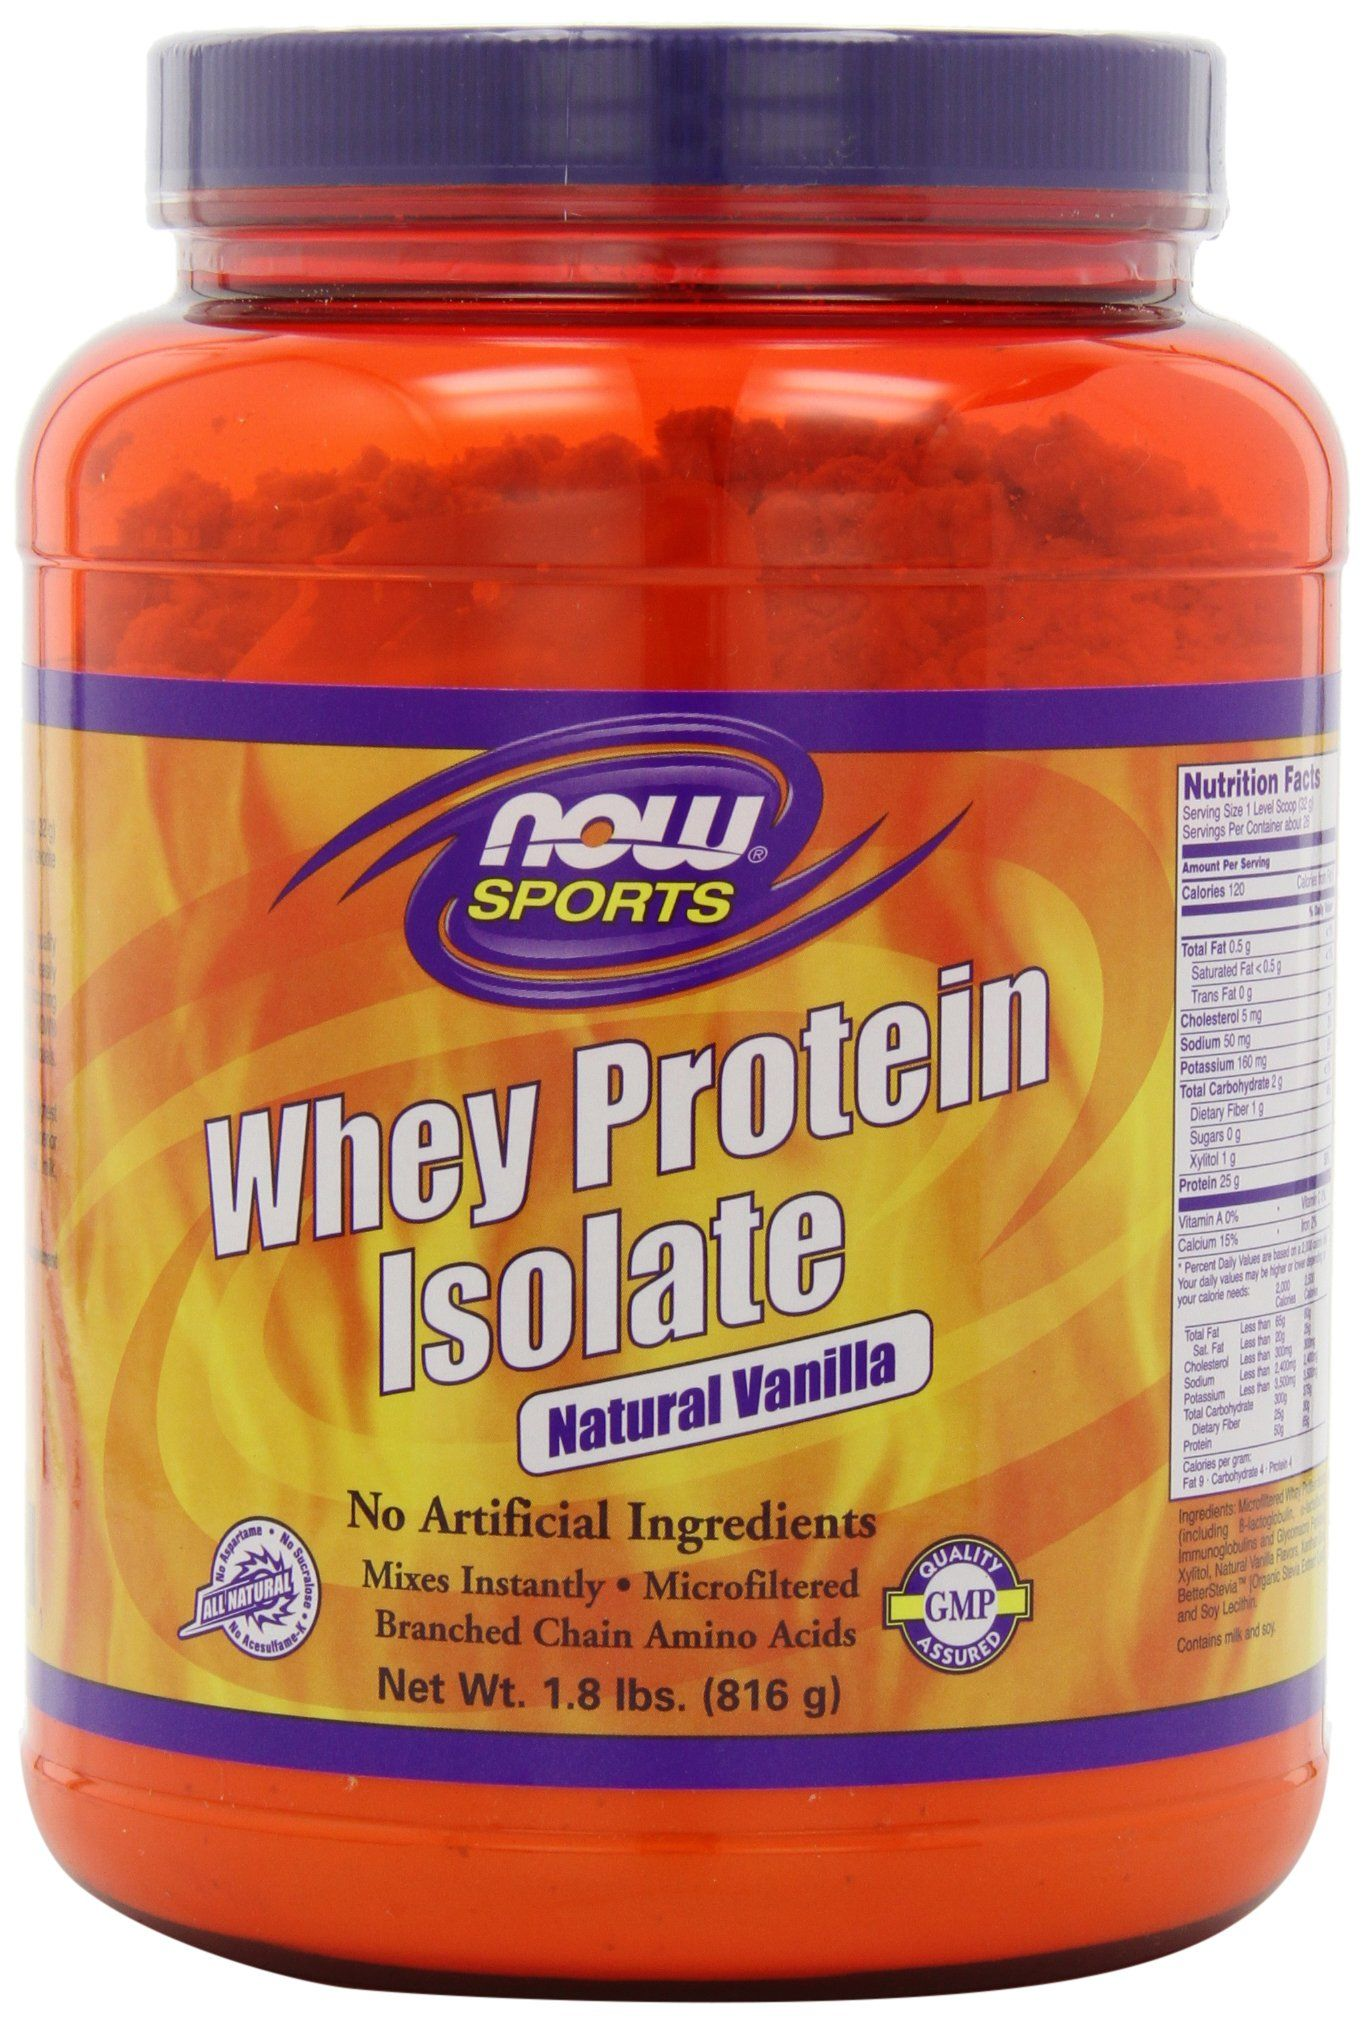 NOW Foods Whey Protein Isolate Vanilla, 1.8 LB-  labdoor.com- Quality Ranking: 2/73; Value Ranking: 25/73, 22g protein@ $2.03/serving